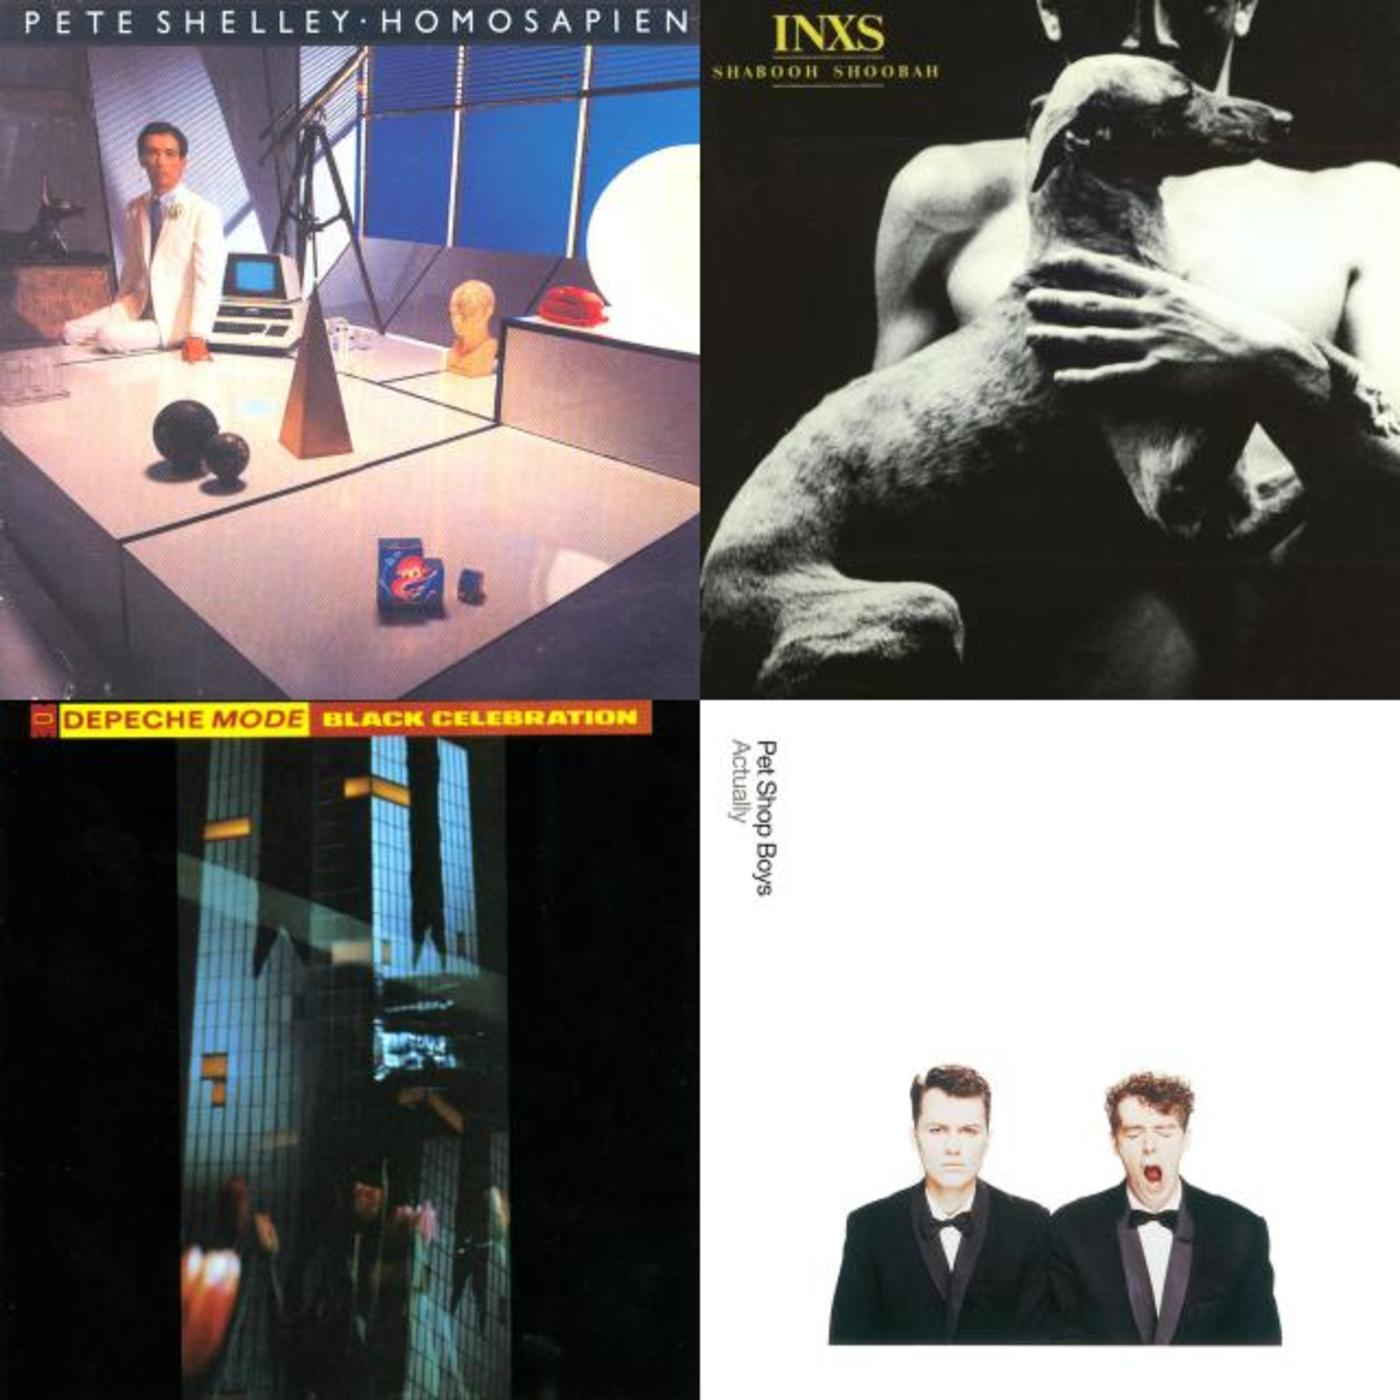 The Long Walk: A Brooding 80s Mix - INXS, Depeche Mode, Pete Shelley, Pet Shop Boys, The Psychedelic Furs, The Boomtown Rats, New Order